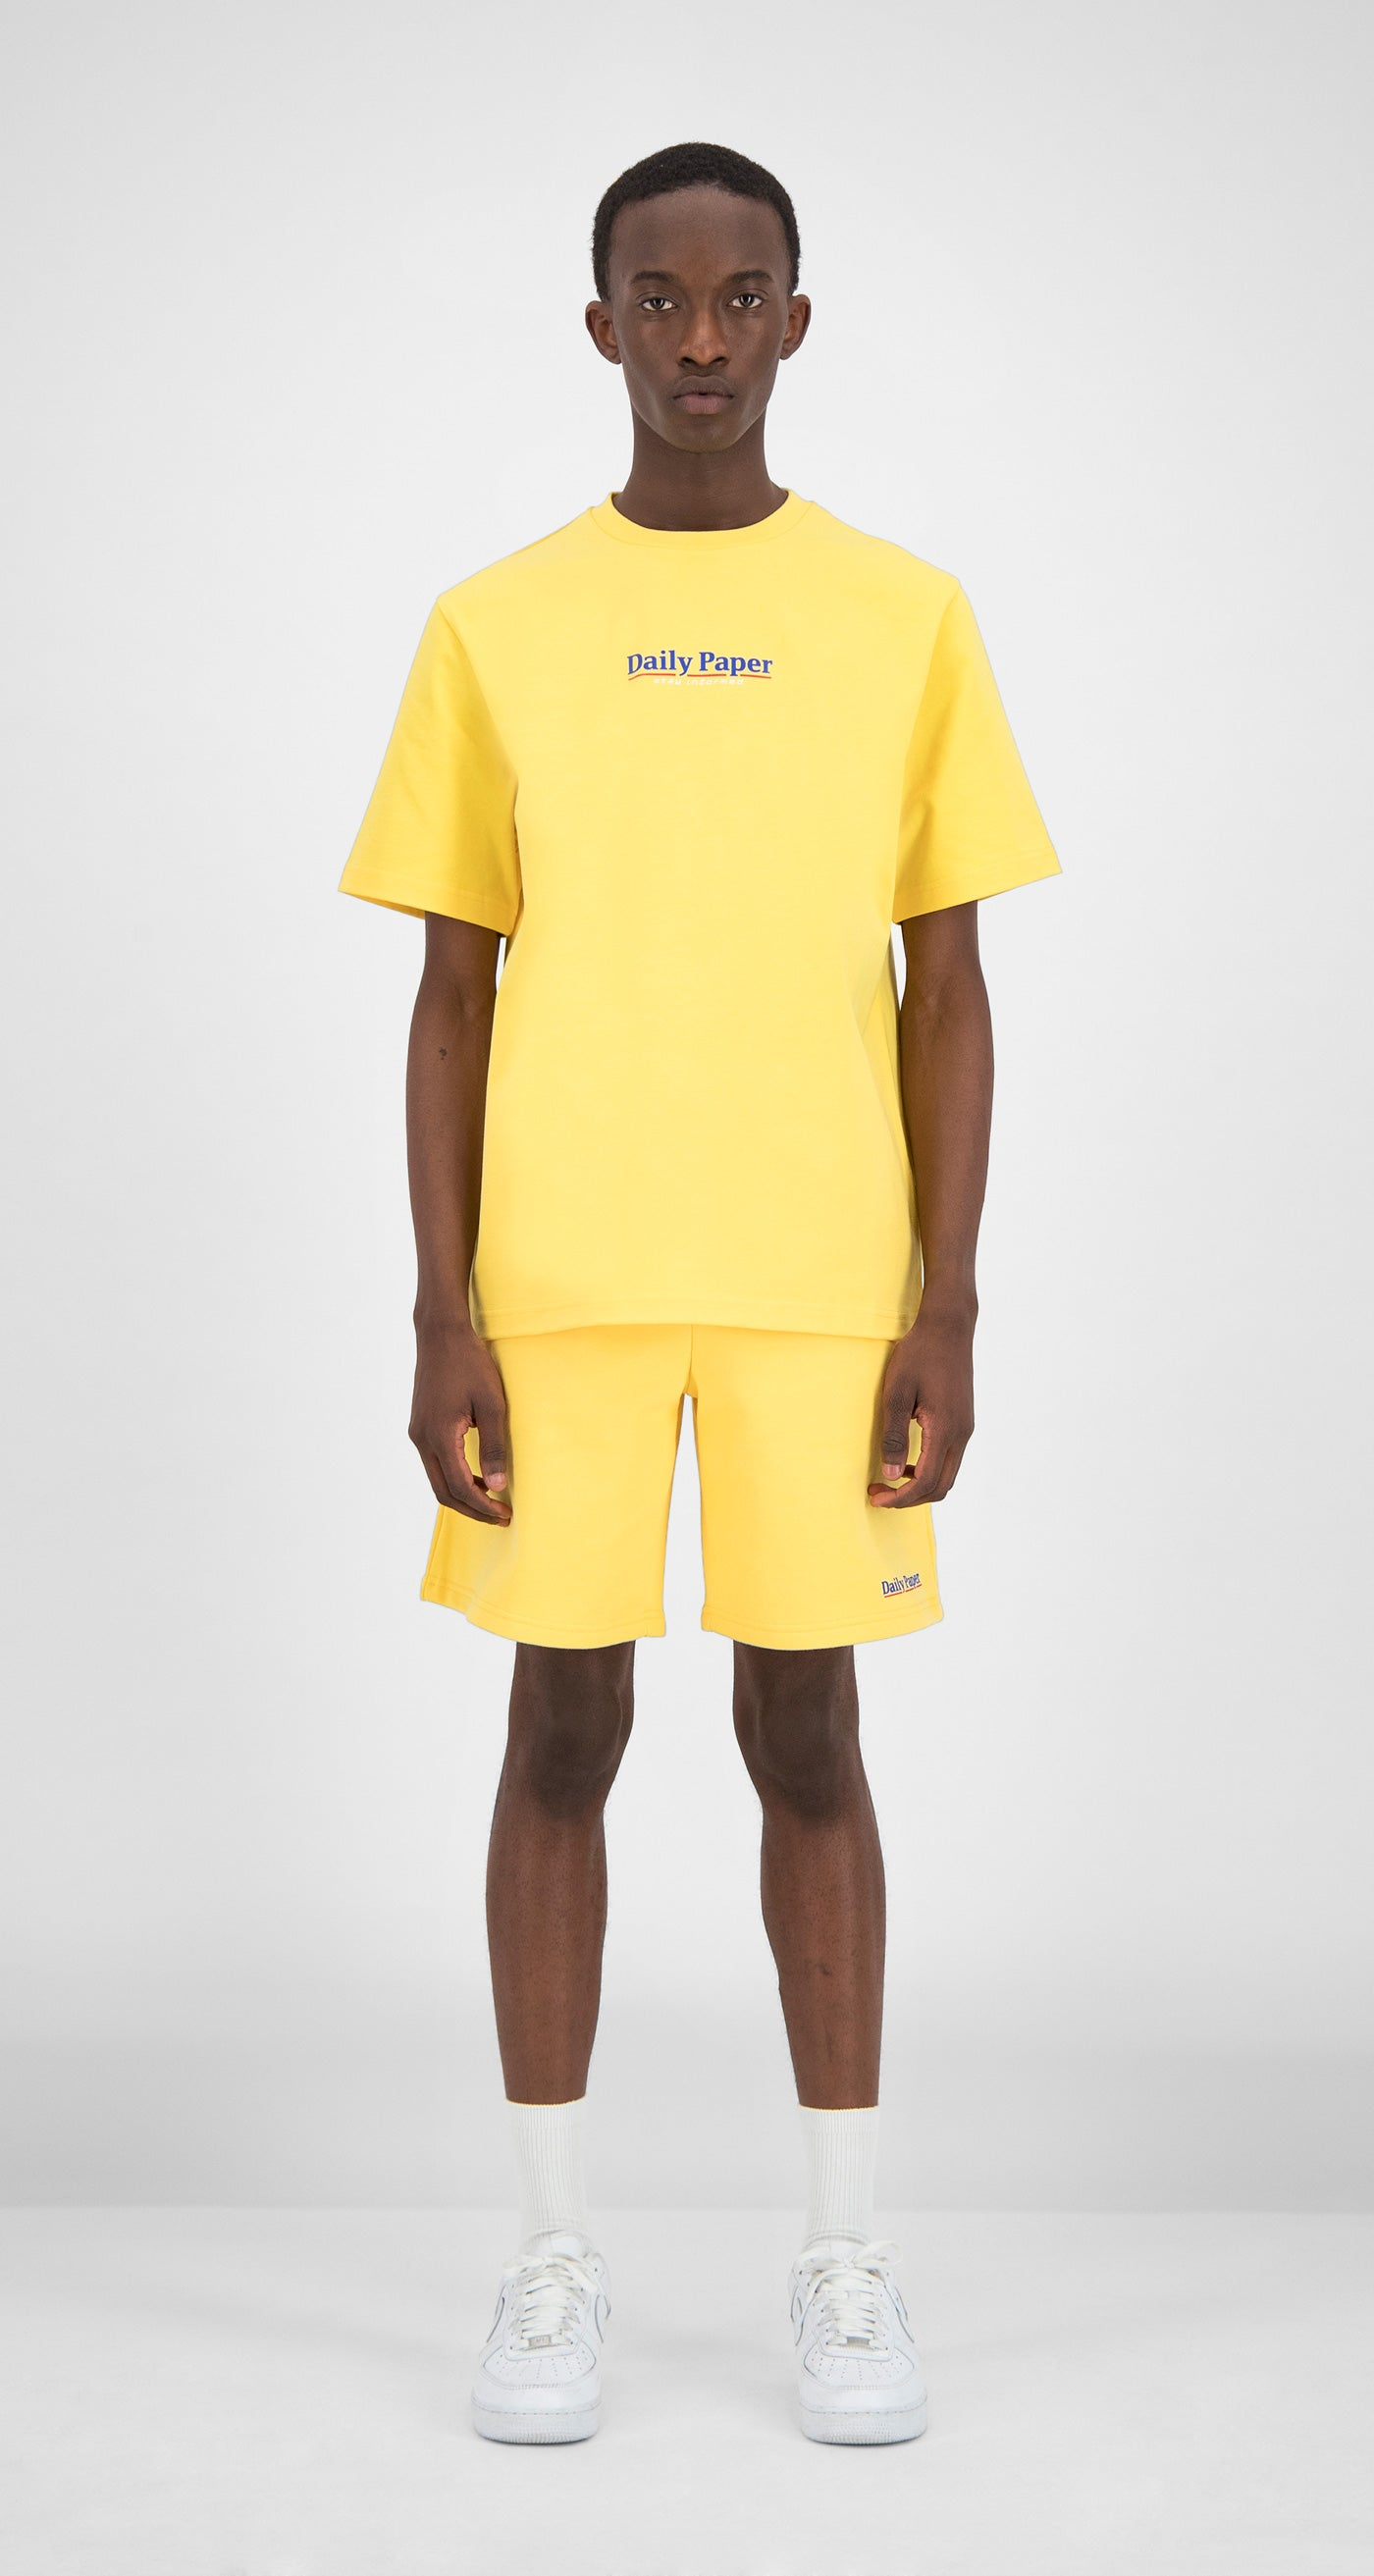 Daily Paper - Yellow Essential T-Shirt Men Front